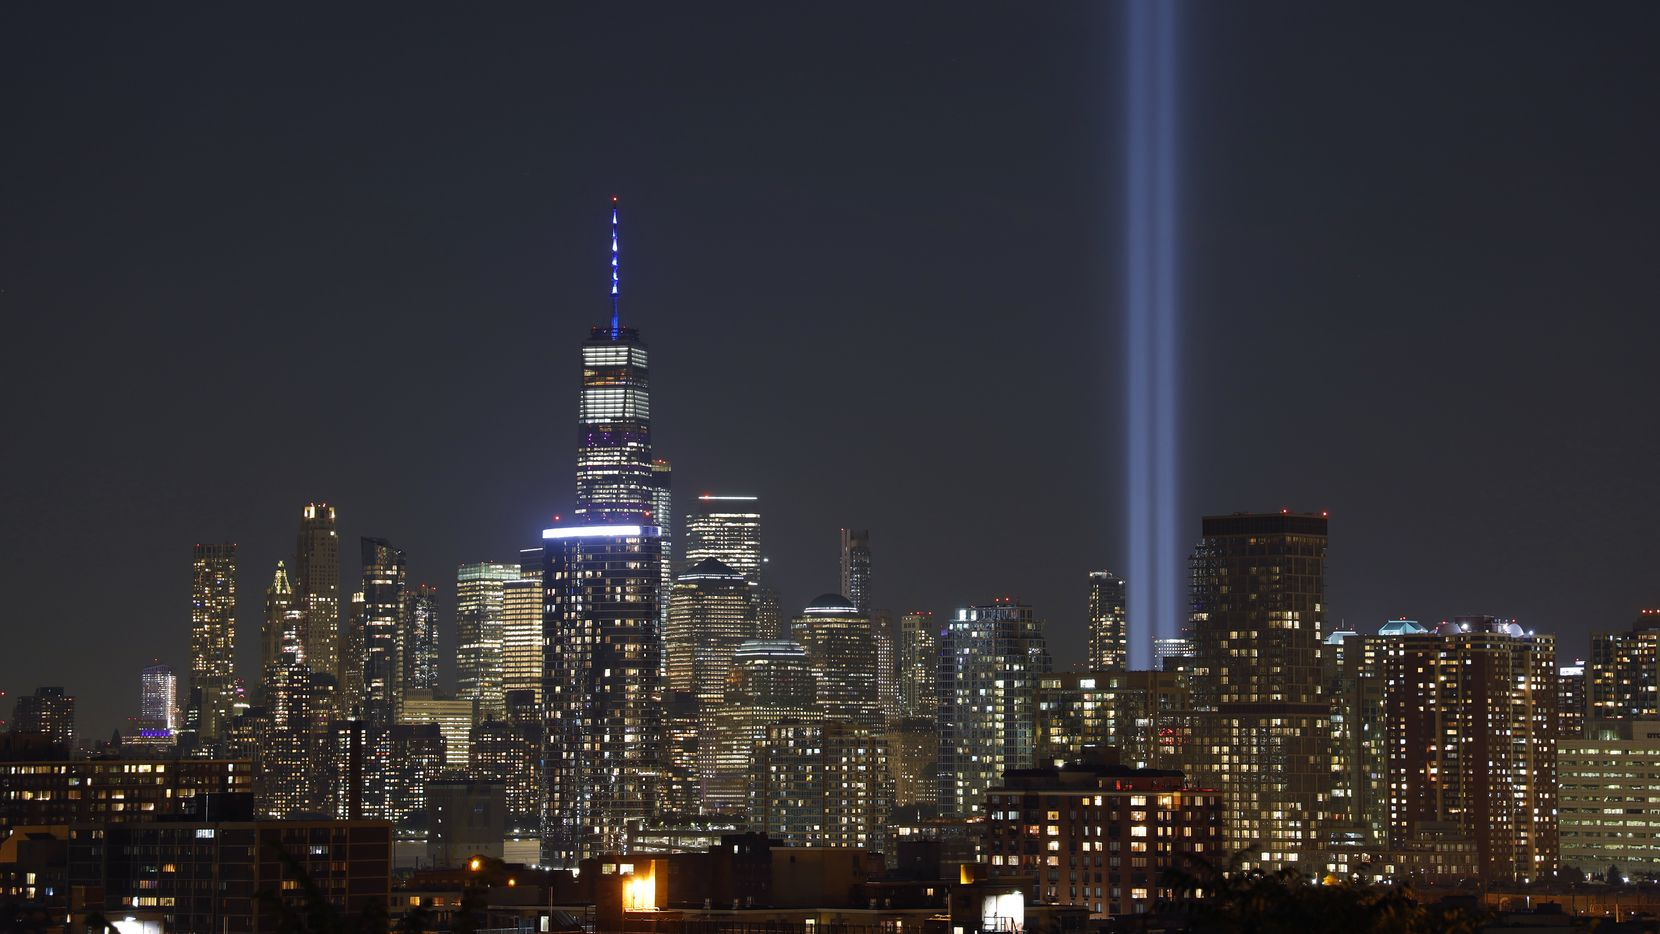 The annual Tribute in Light is illuminated on the skyline of lower Manhattan on the 18th anniversary of the 9/11 attacks in New York City on September 11, 2019 as seen from Jersey City, New Jersey. A self-guided 9/11 memorial will take place this weekend in McKinney.